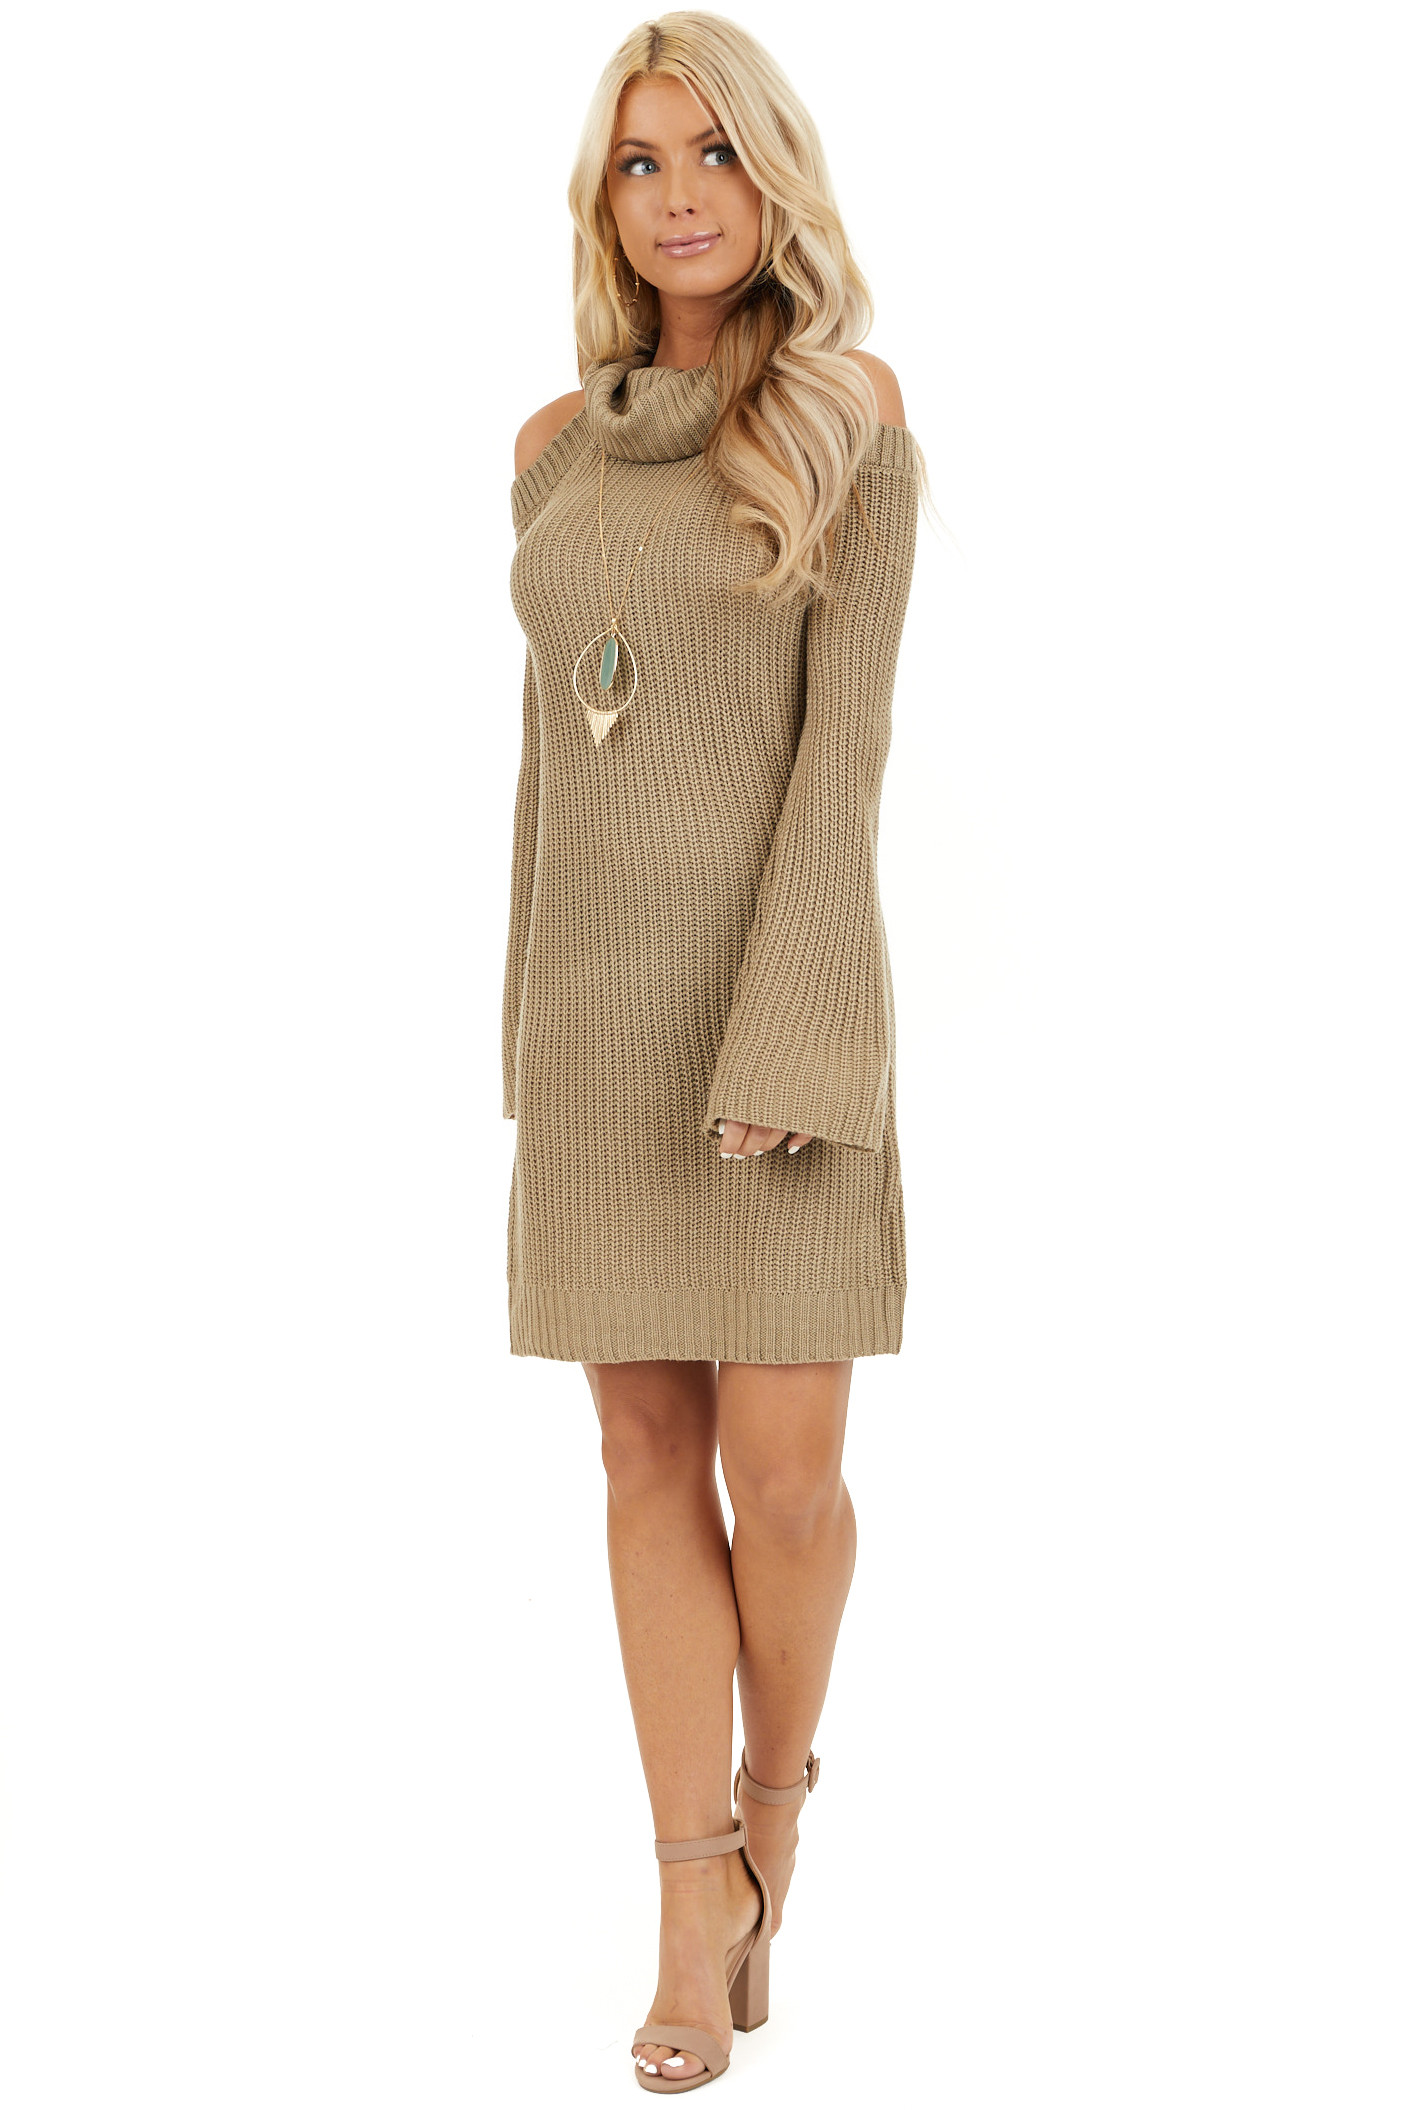 Khaki Sweater Dress with Cowl Neckline and Shoulder Cutouts front full body